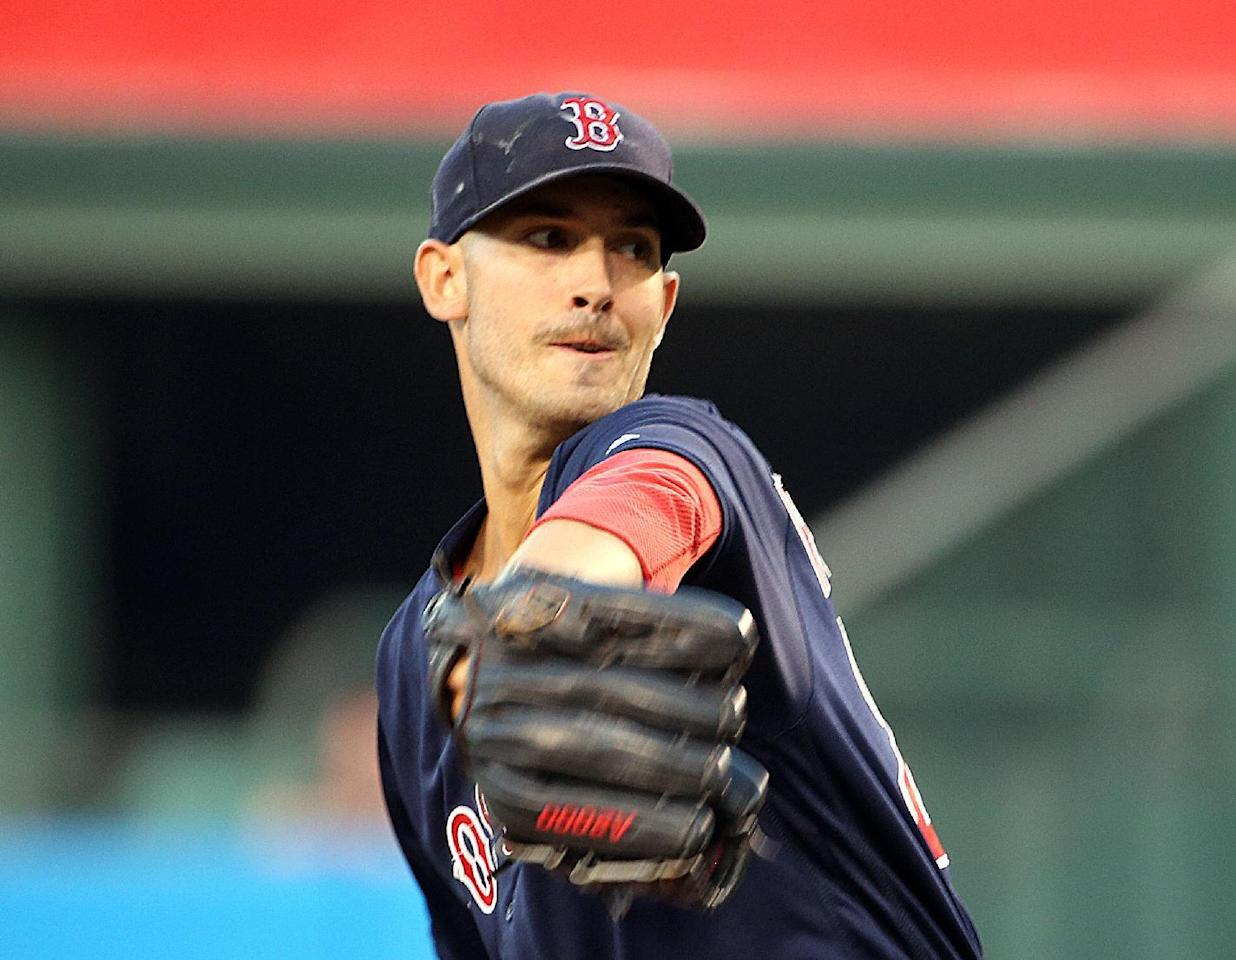 Boston Red Sox starter Rick Porcello pitches to the Los Angeles Angels in the first inning of a baseball game in Anaheim, Calif., Friday, July 29, 2016. (AP Photo/Reed Saxon)